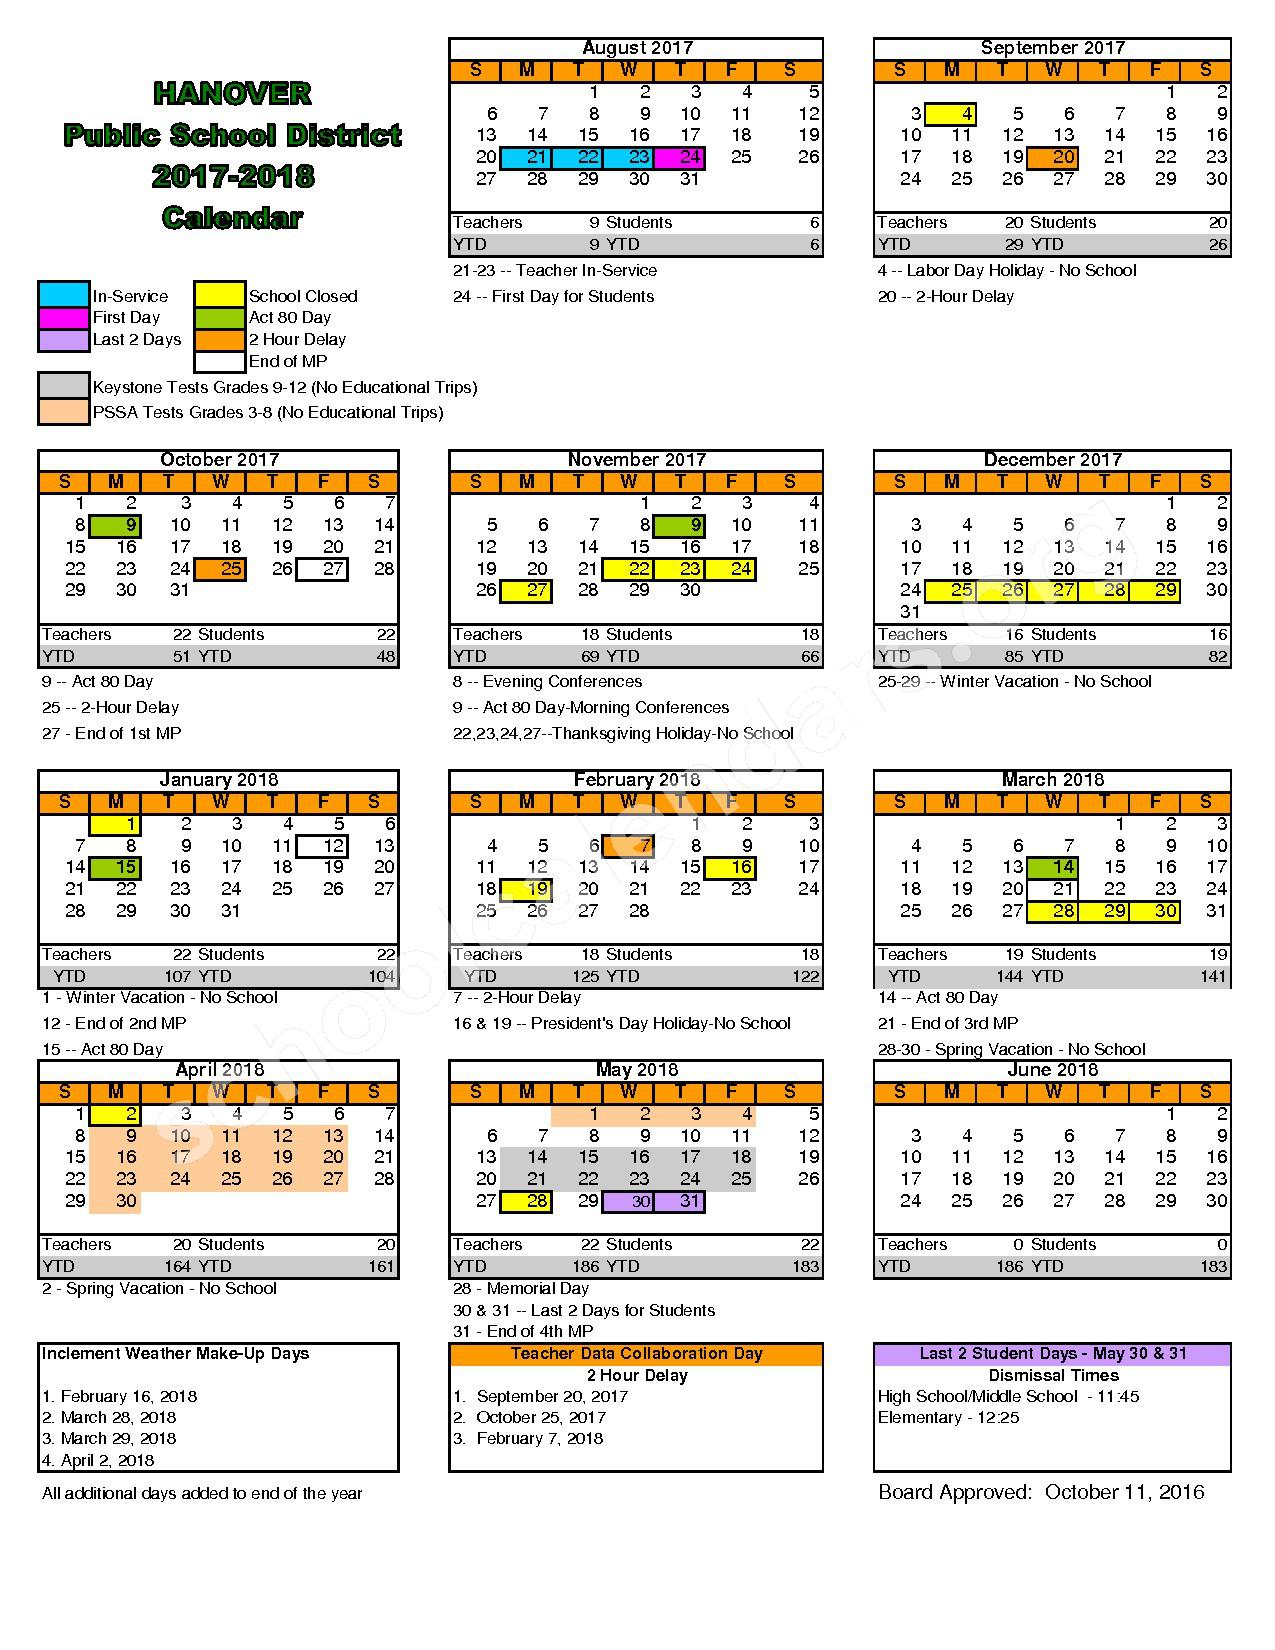 2017 - 2018 District Calendar – Hanover Public School District – page 1